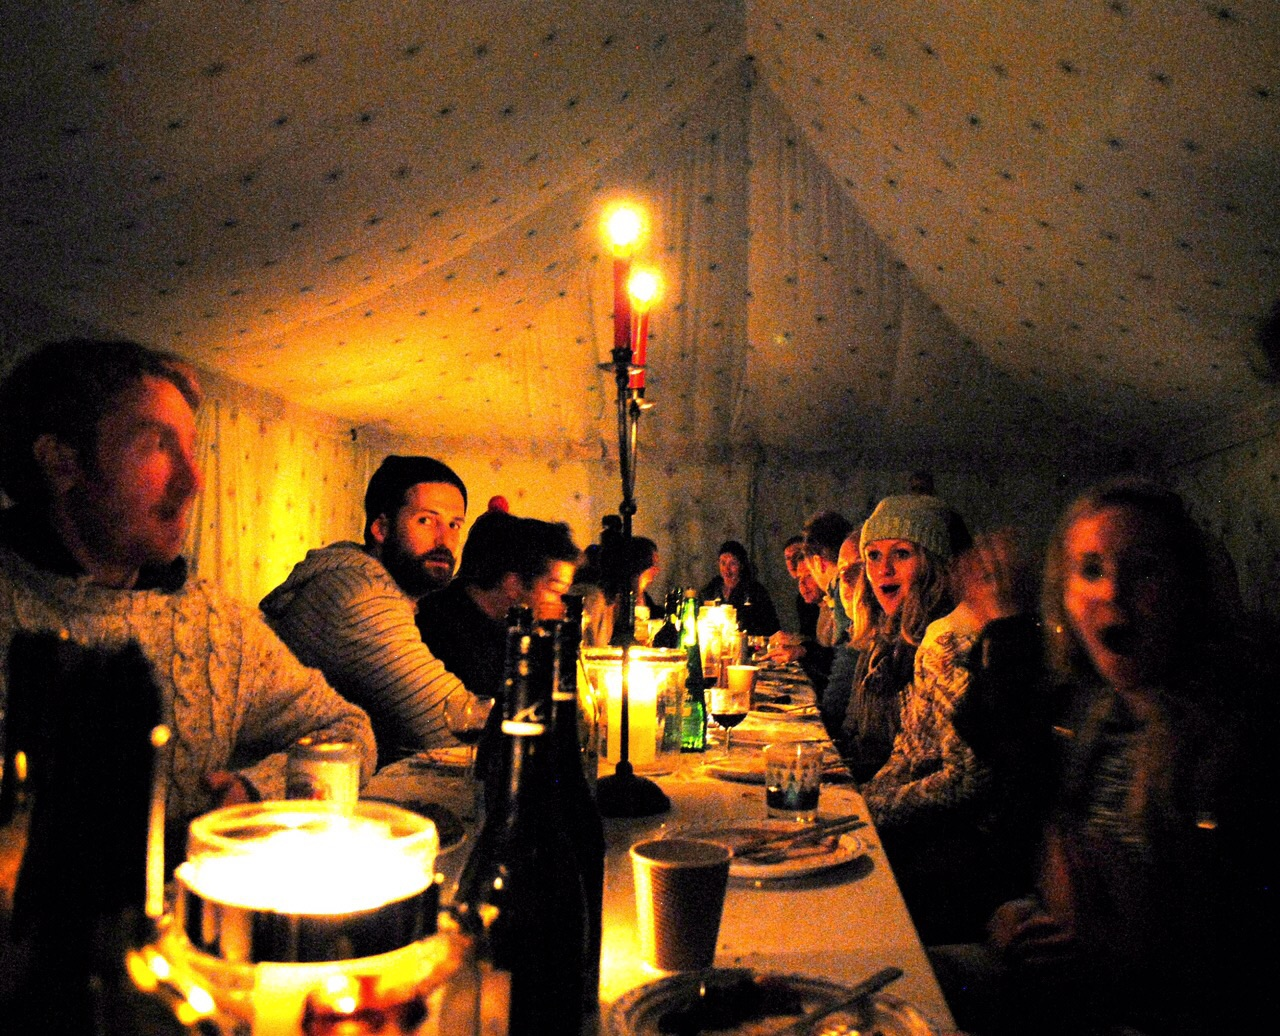 Glamping near London party tent